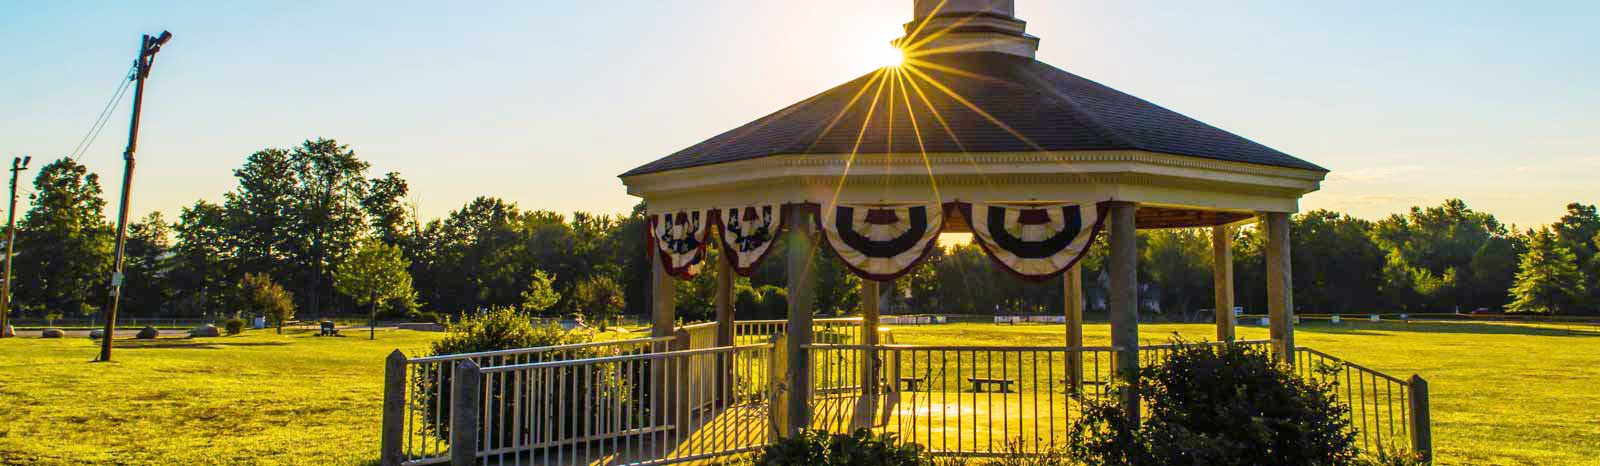 1600-pepperell-sun-over-gazebo-2